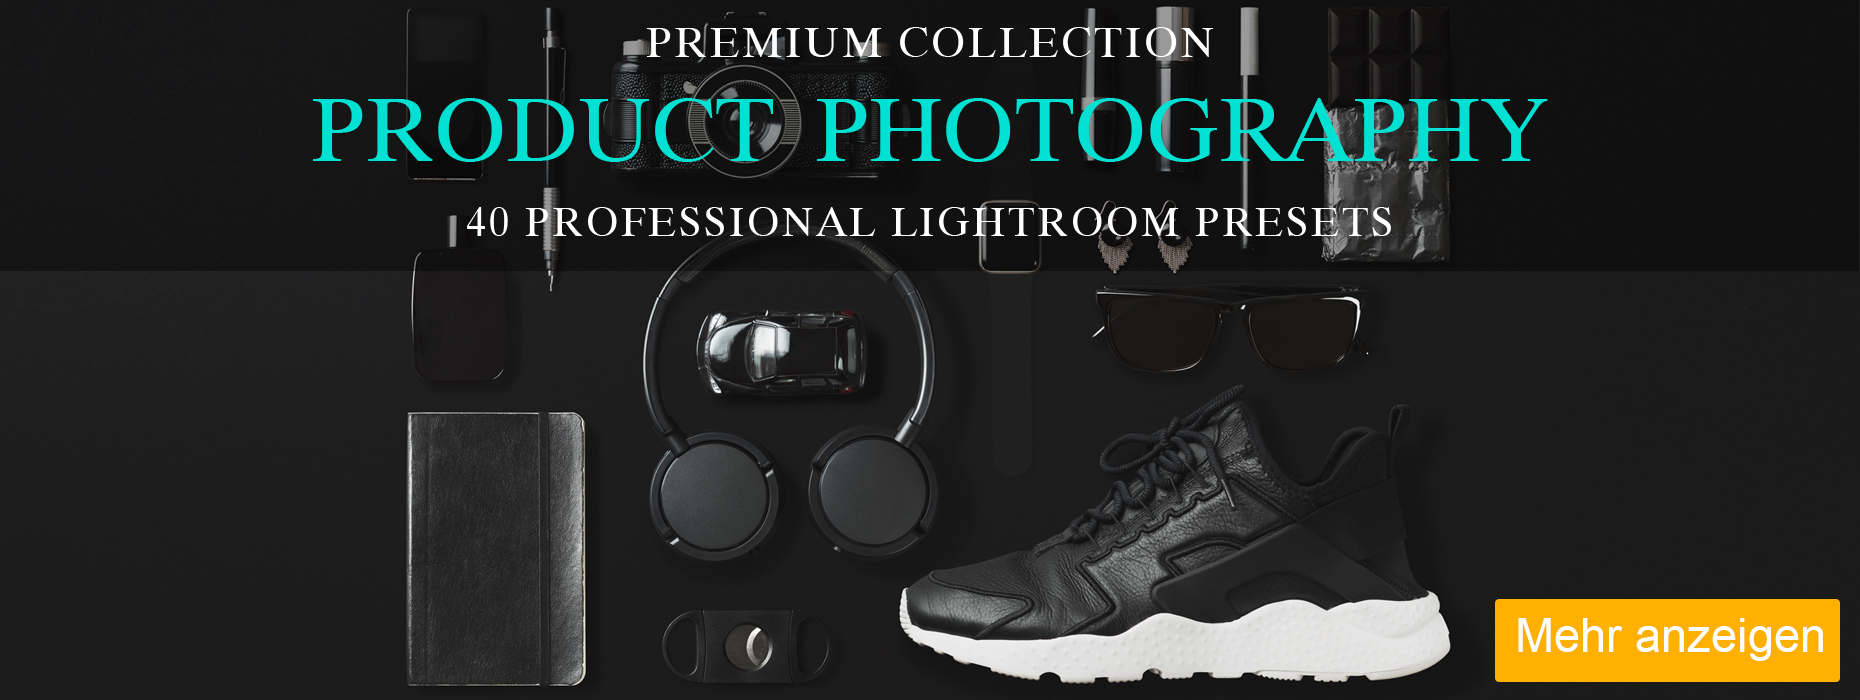 lightroom presets auto product collection